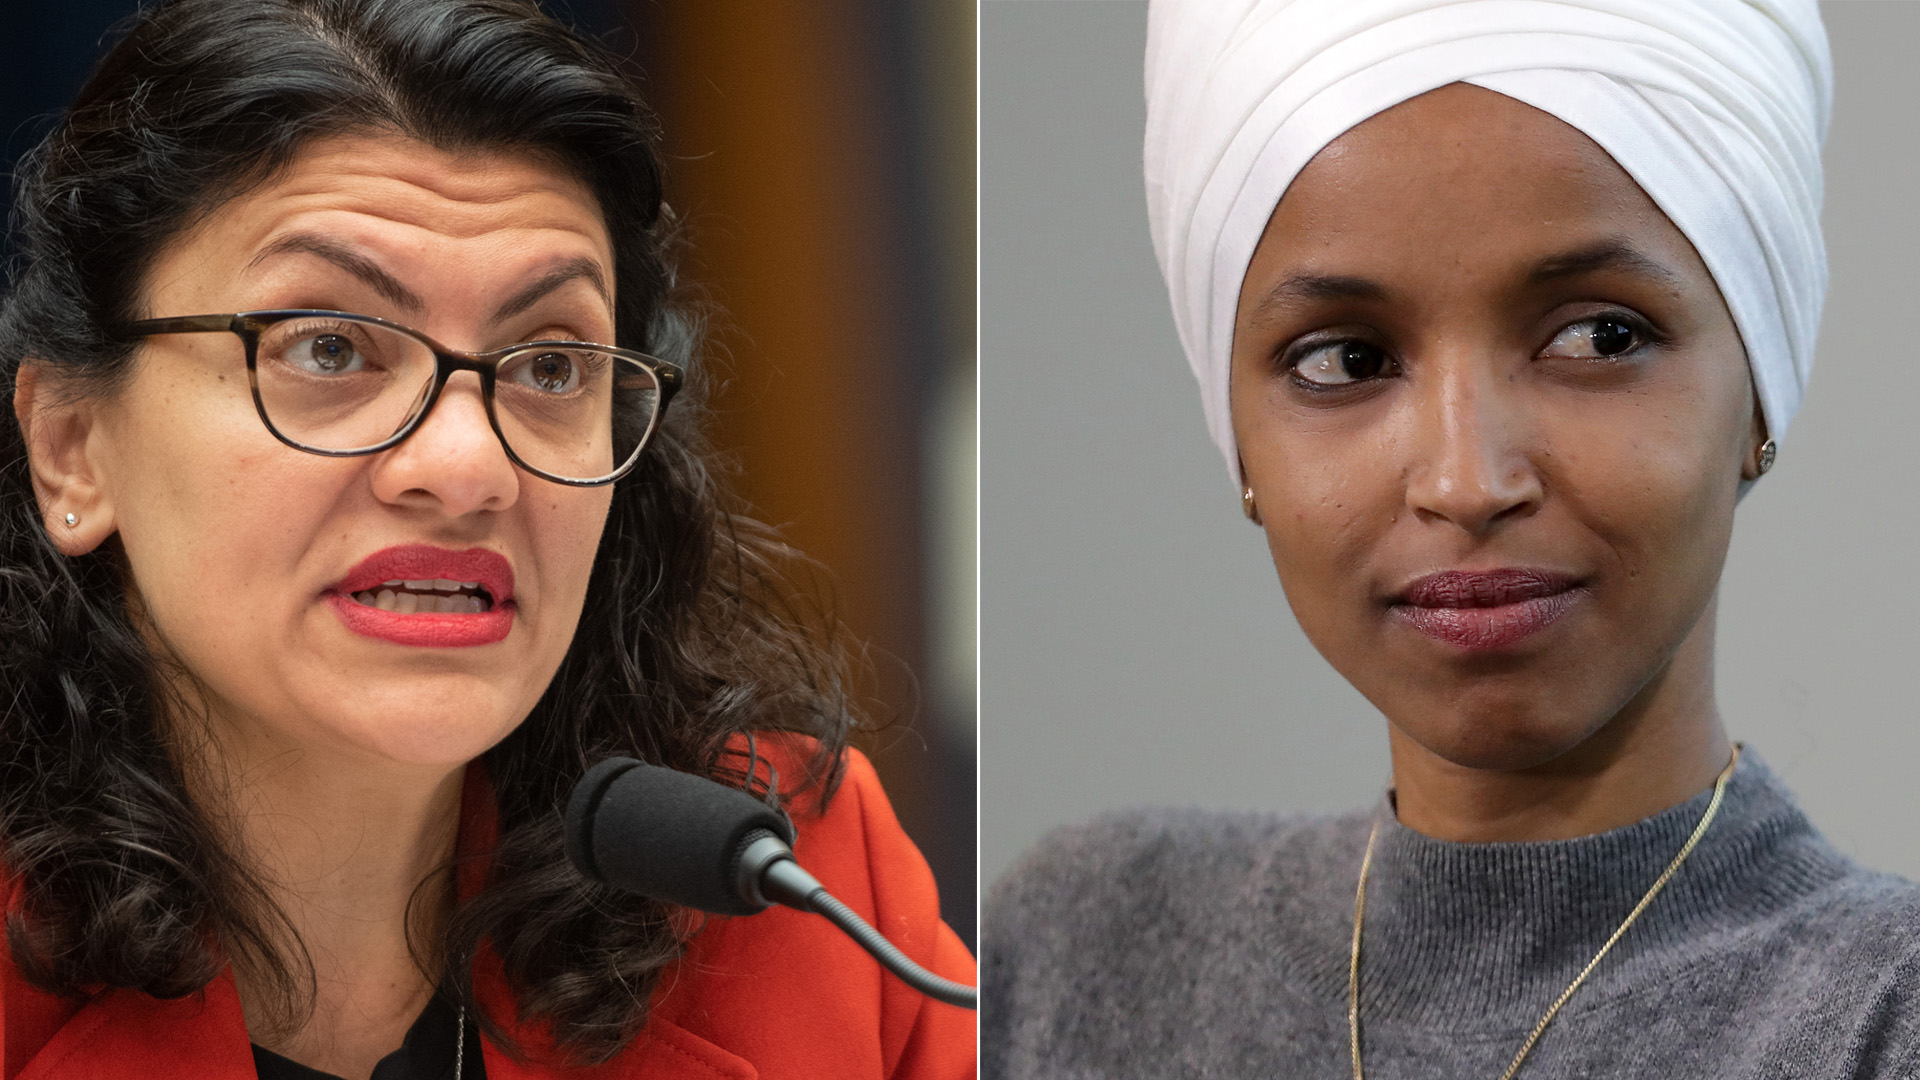 Rep. Rashida Tlaib is seen at Capitol Hill in Washington, D.C. on May 22, 2019, and Rep. Ilhan Omar is seen at the National Housing Center on July 23, 2019, in Washington, D.C. (Credit: Saul Loeb/AFP/Getty Images and Chip Somodevilla/Getty Images)